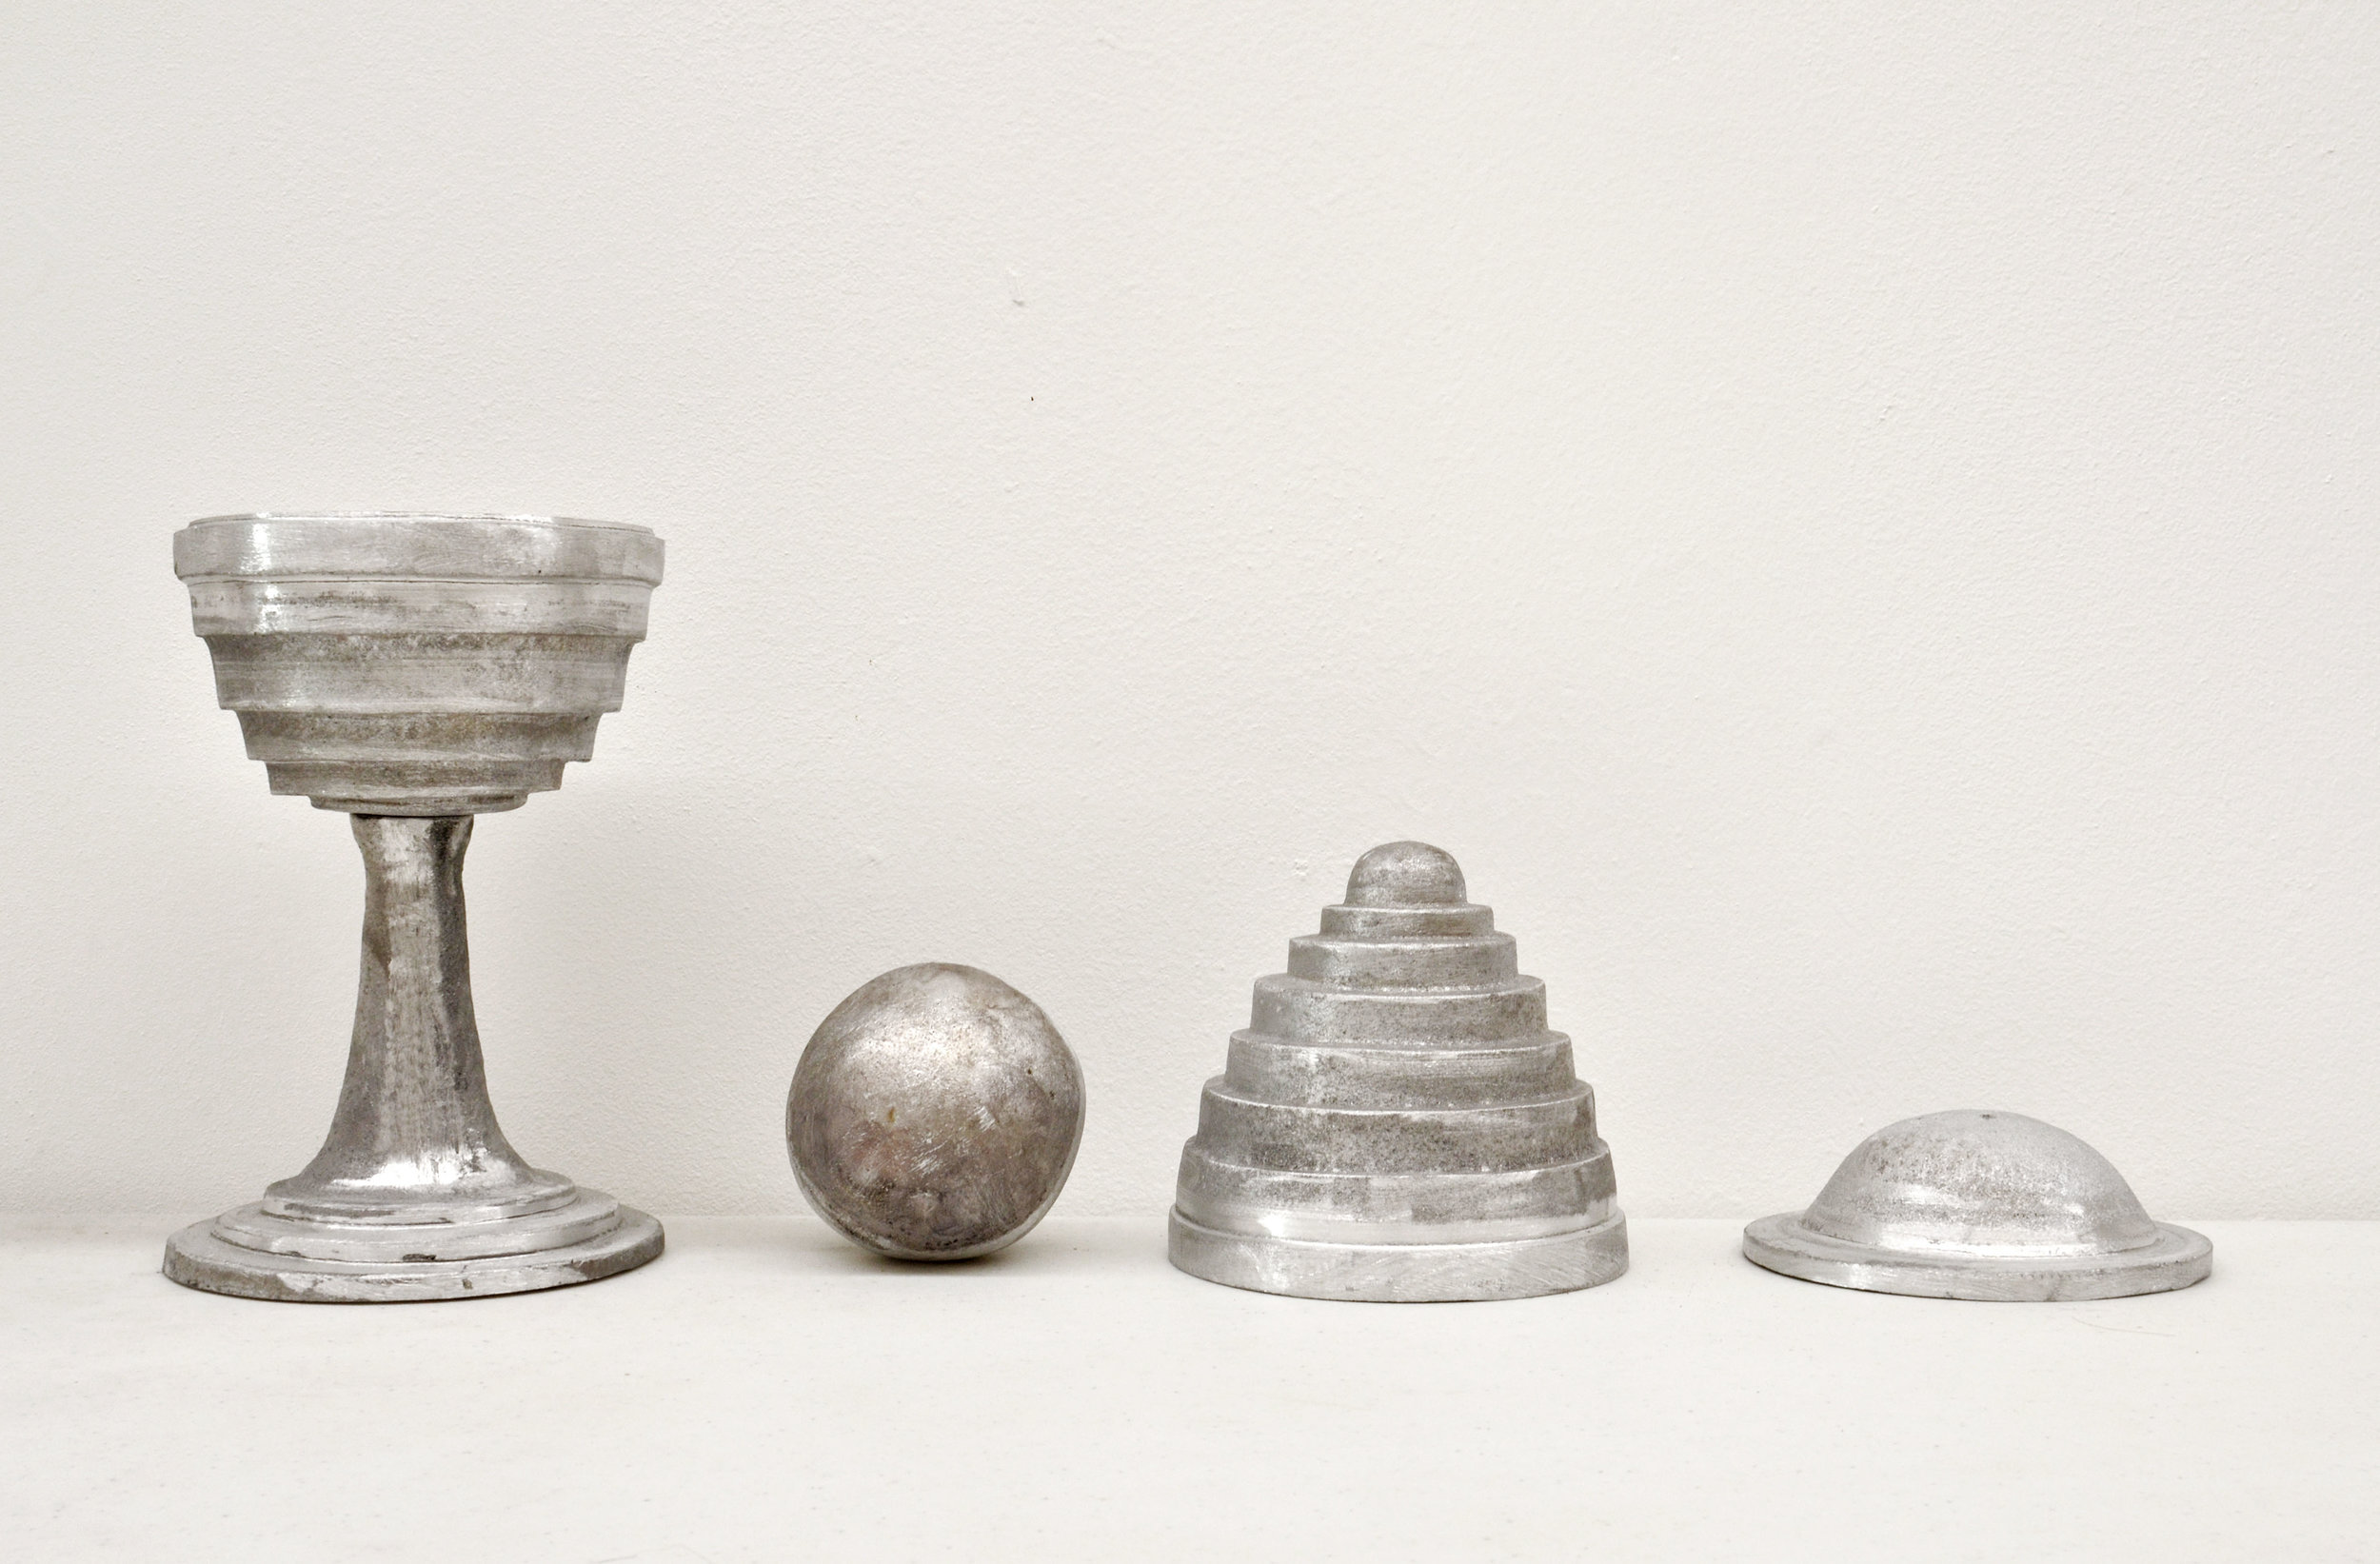 On Not Seeing: The Magic Ball & Vase , 2018; Cast Aluminum; 16 x 10 x 28 inches overall